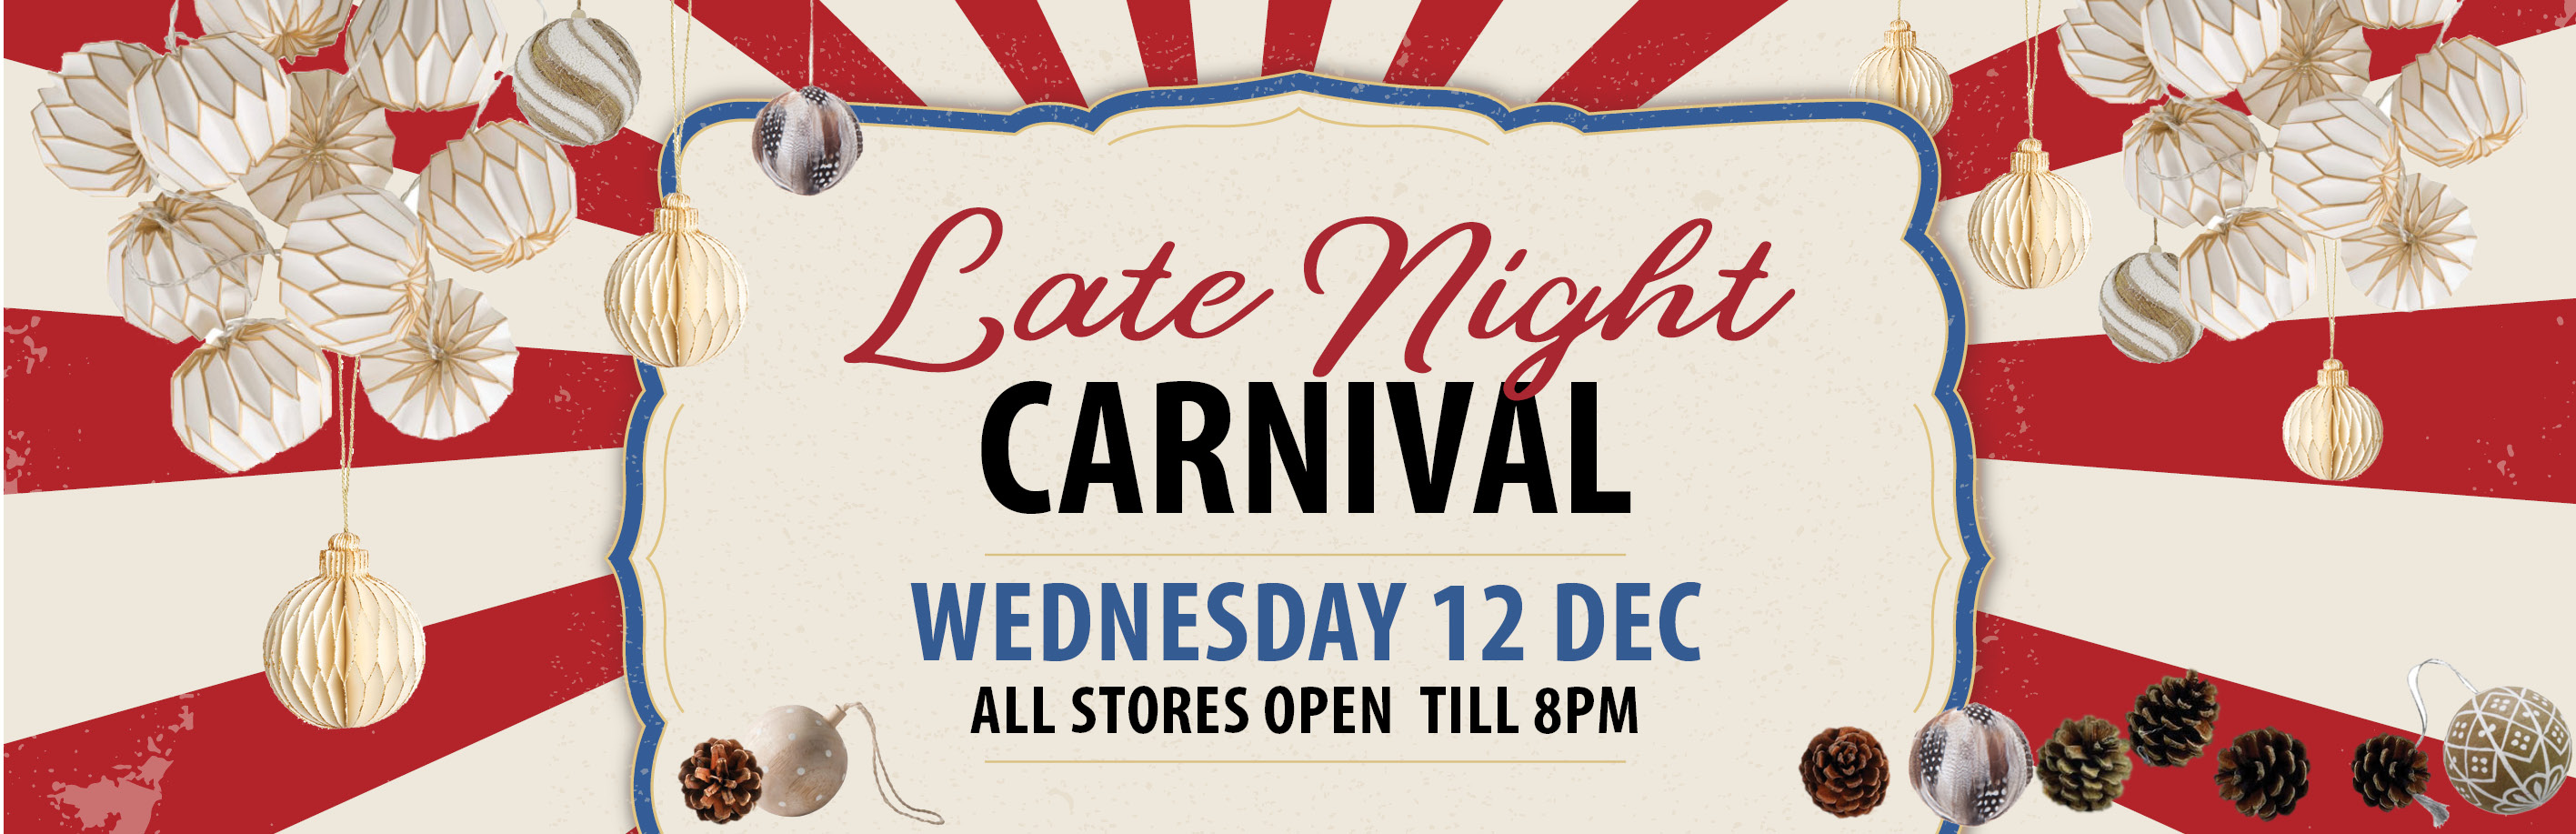 Late Night Carnival feat image 2018